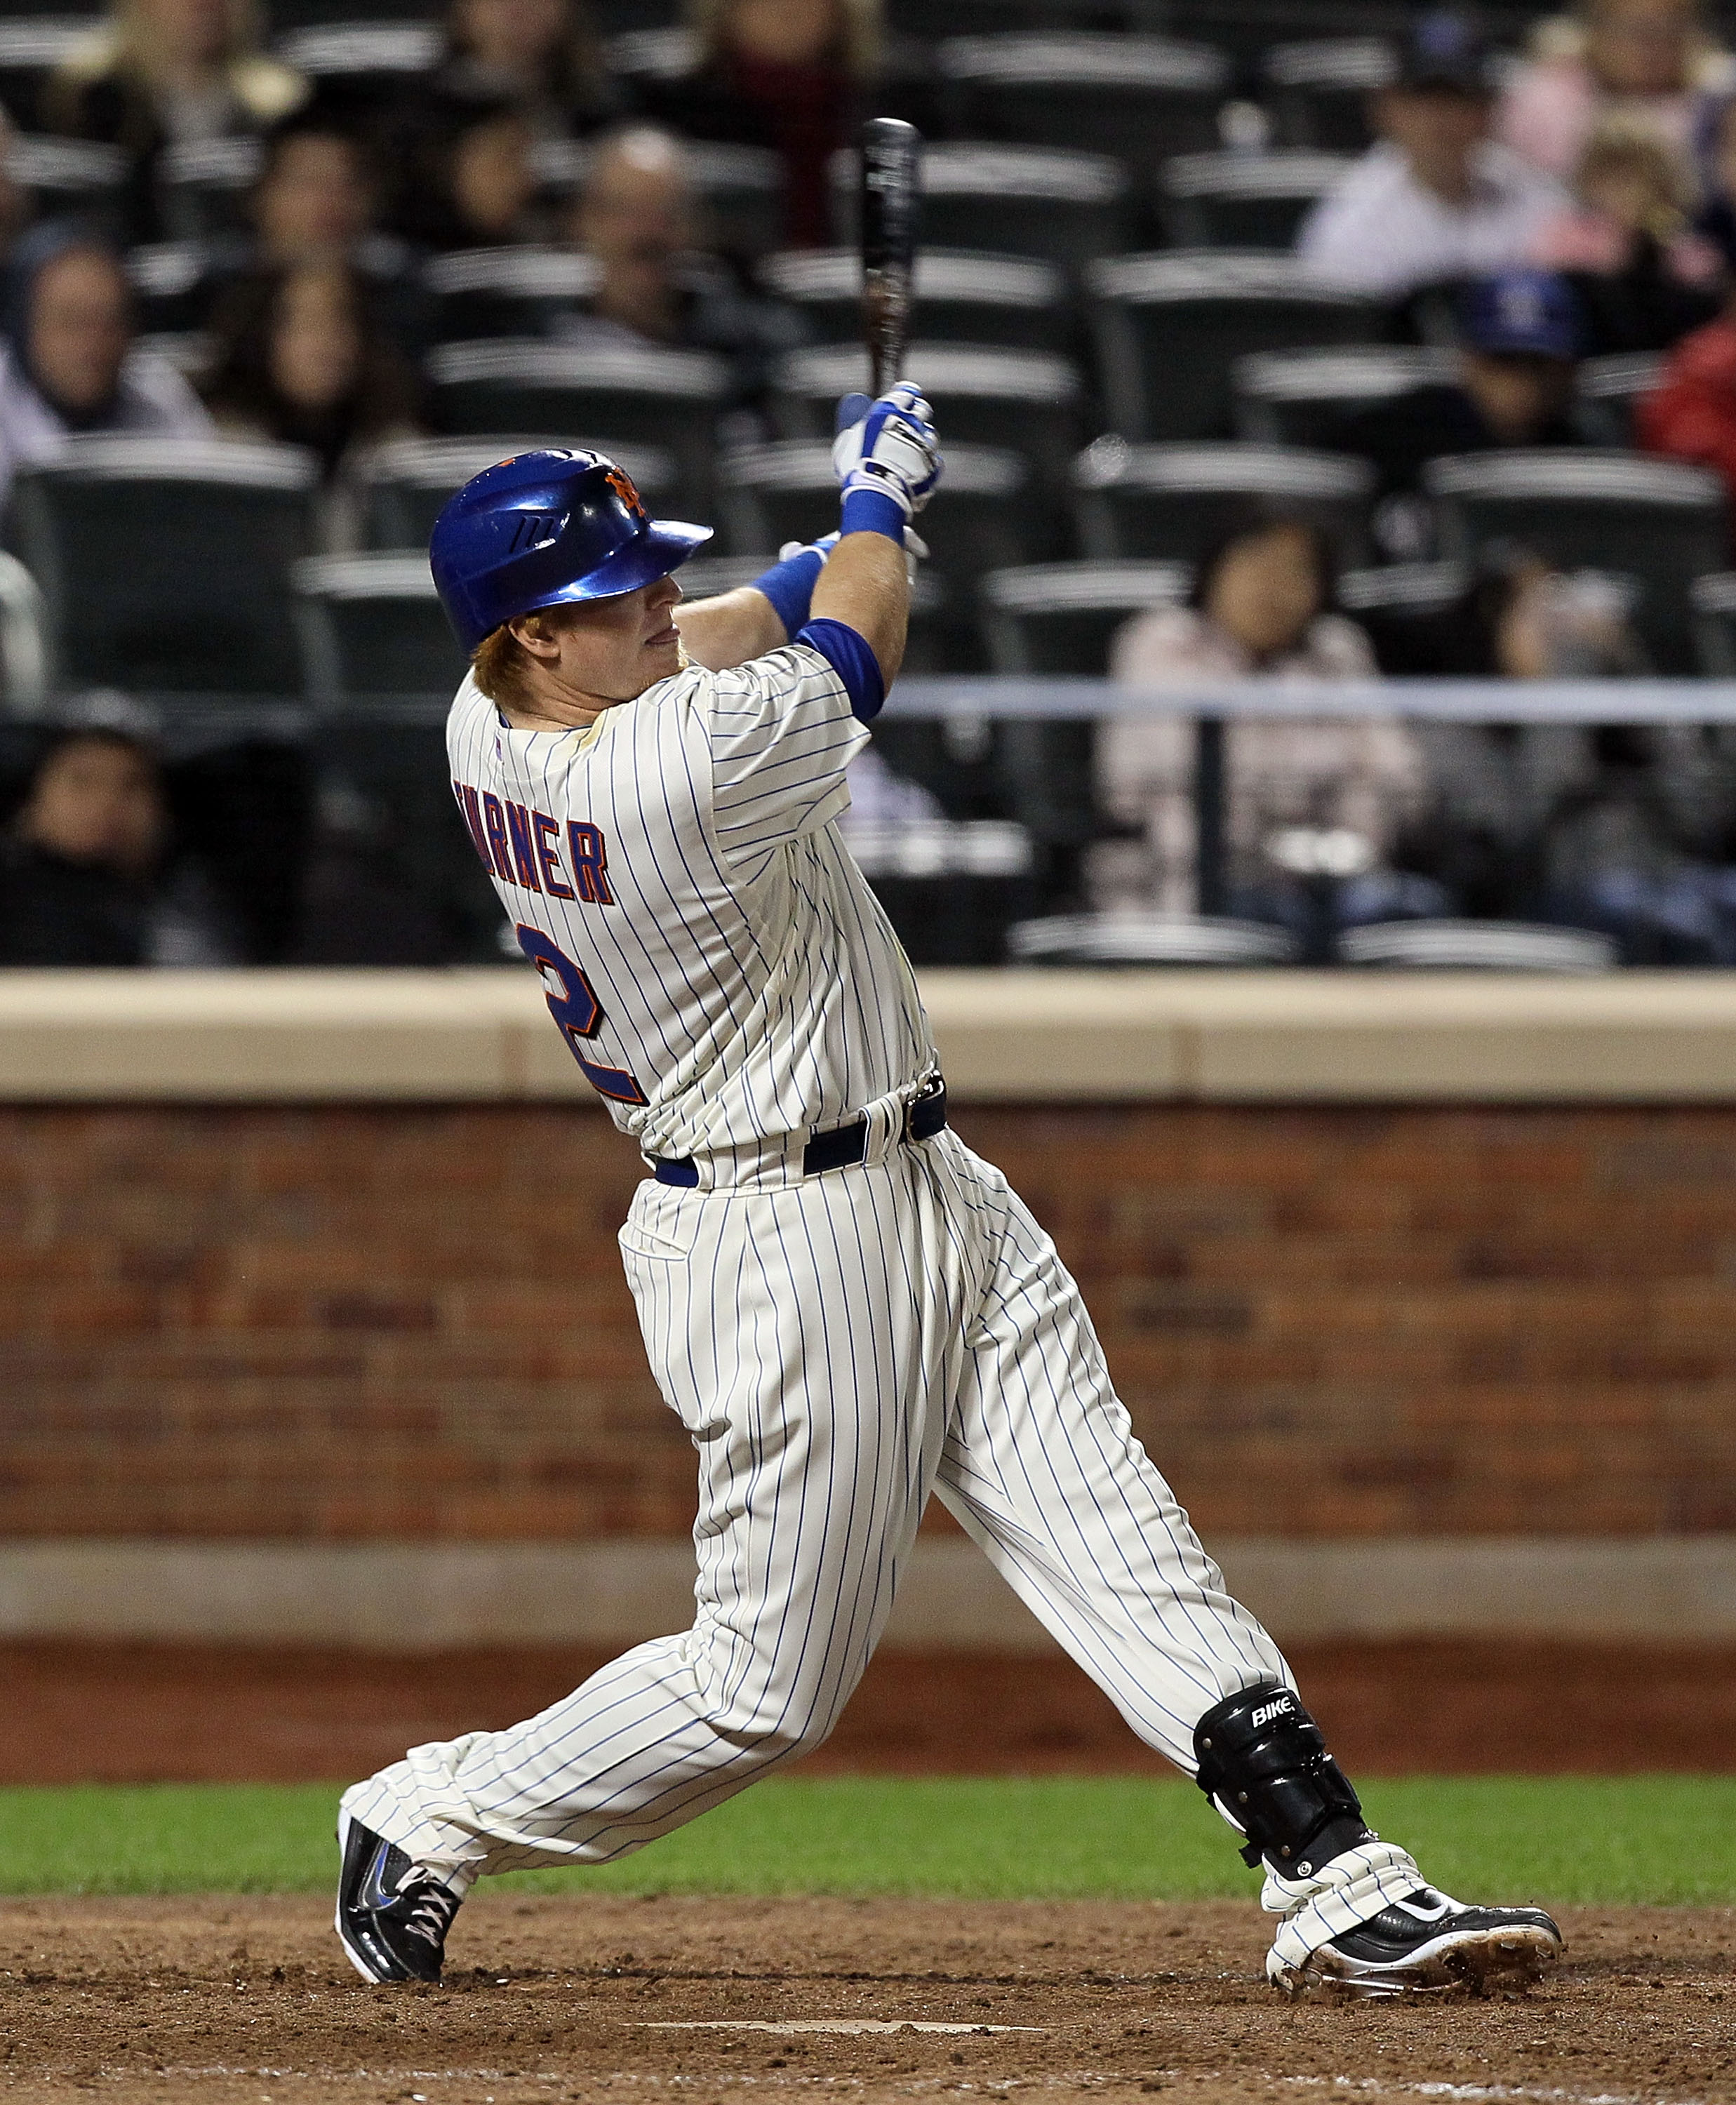 NEW YORK, NY - MAY 07:  Justin Turner #2 of the New York Mets hits an eighth inning two run single against the Los Angeles Dodgers on May 7, 2011 at Citi Field in the Flushing neighborhood of the Queens borough of New York City.  (Photo by Jim McIsaac/Get